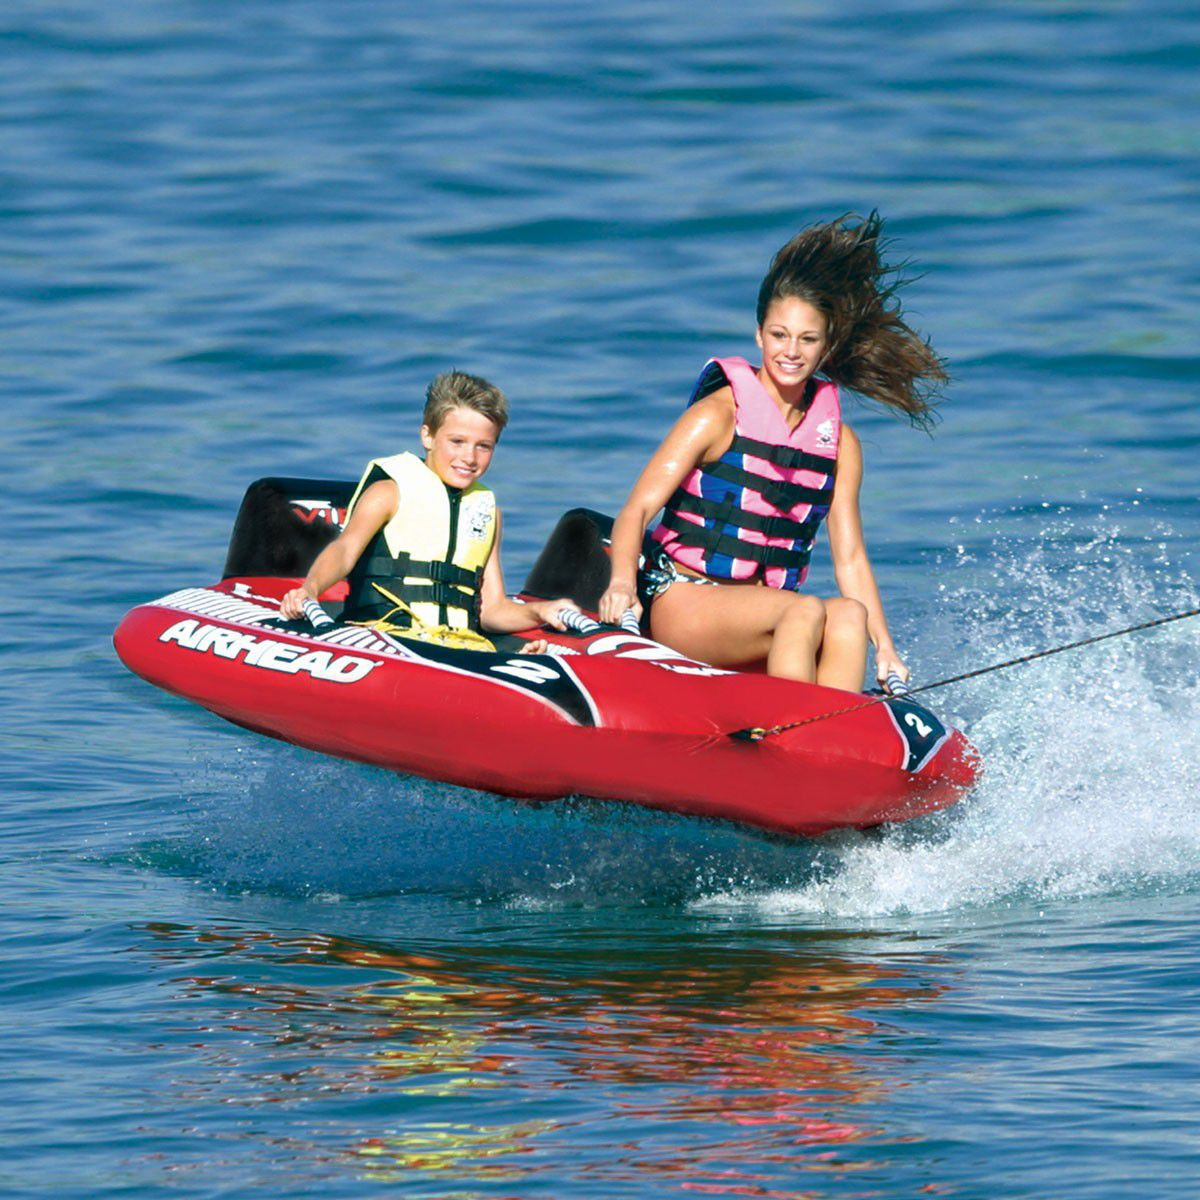 98d0a1dff66 2-person max. towable buoy - Viper - airhead - Videos